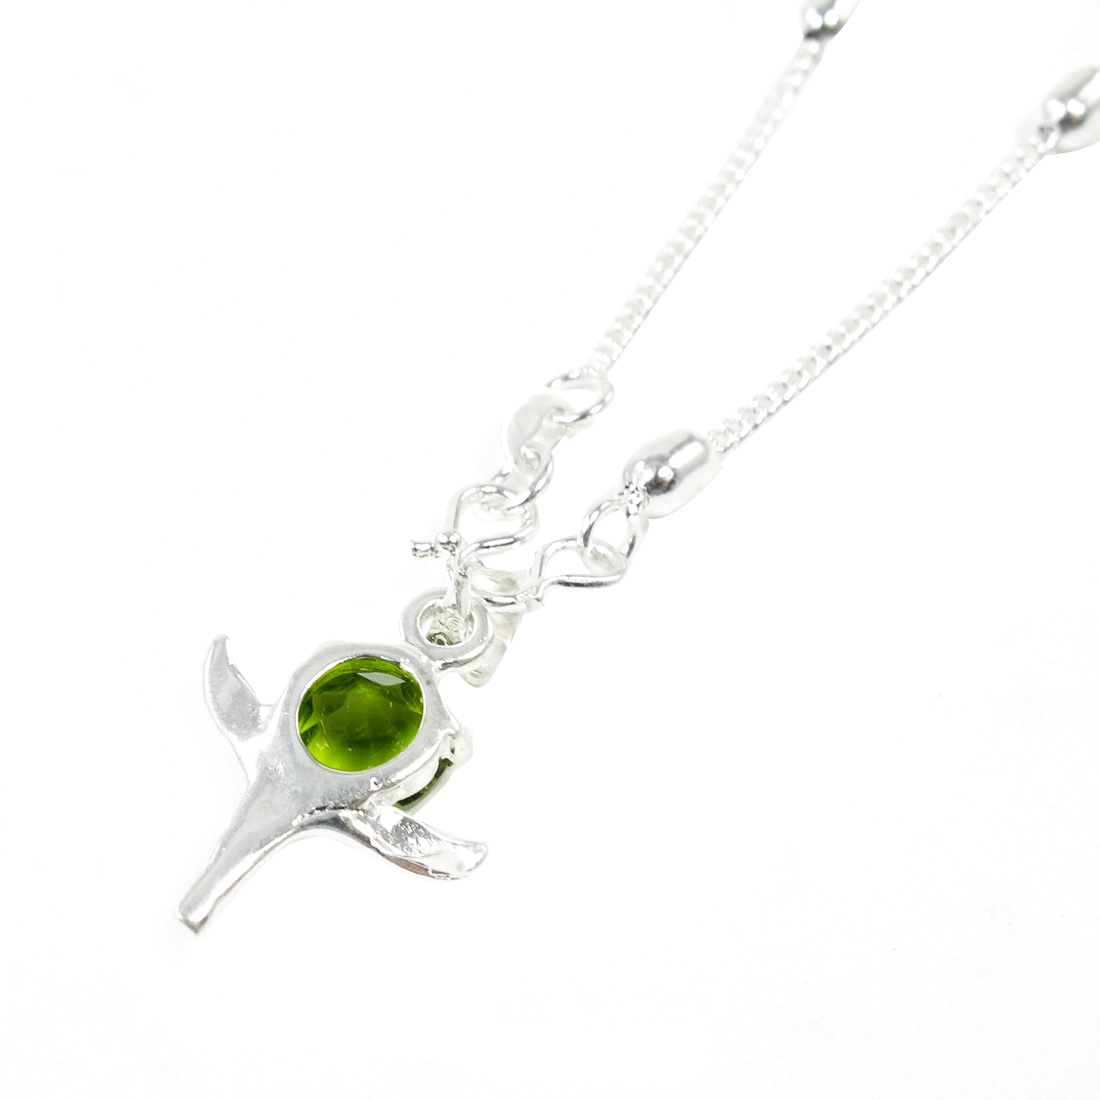 Leaves Pendant Silver Tone Metal Beads Decor Necklace for Ladies